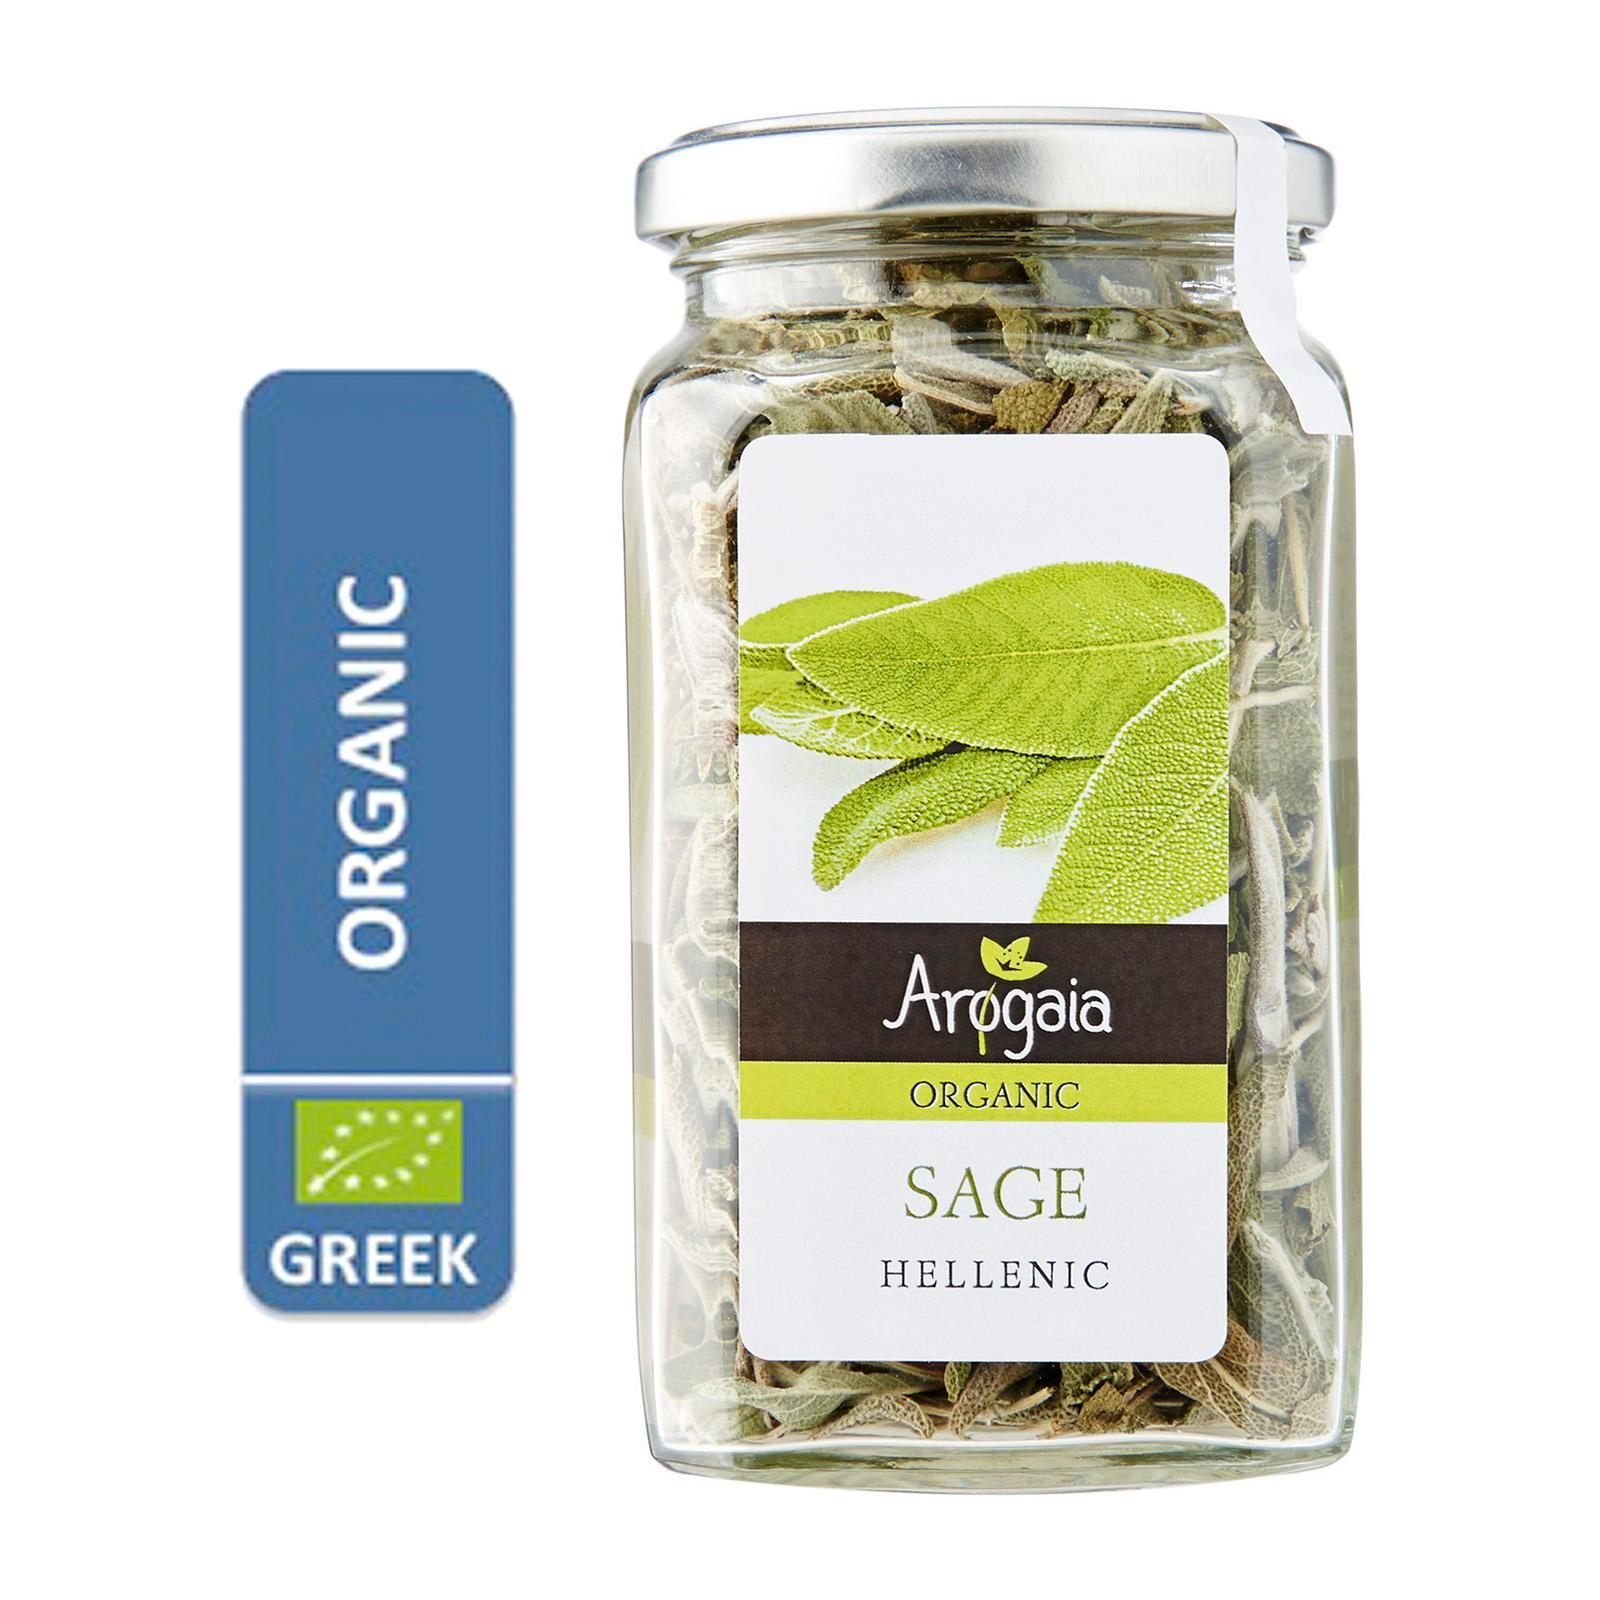 Arogaia Organic Greek Sage In A Glass Jar - By Agora Products